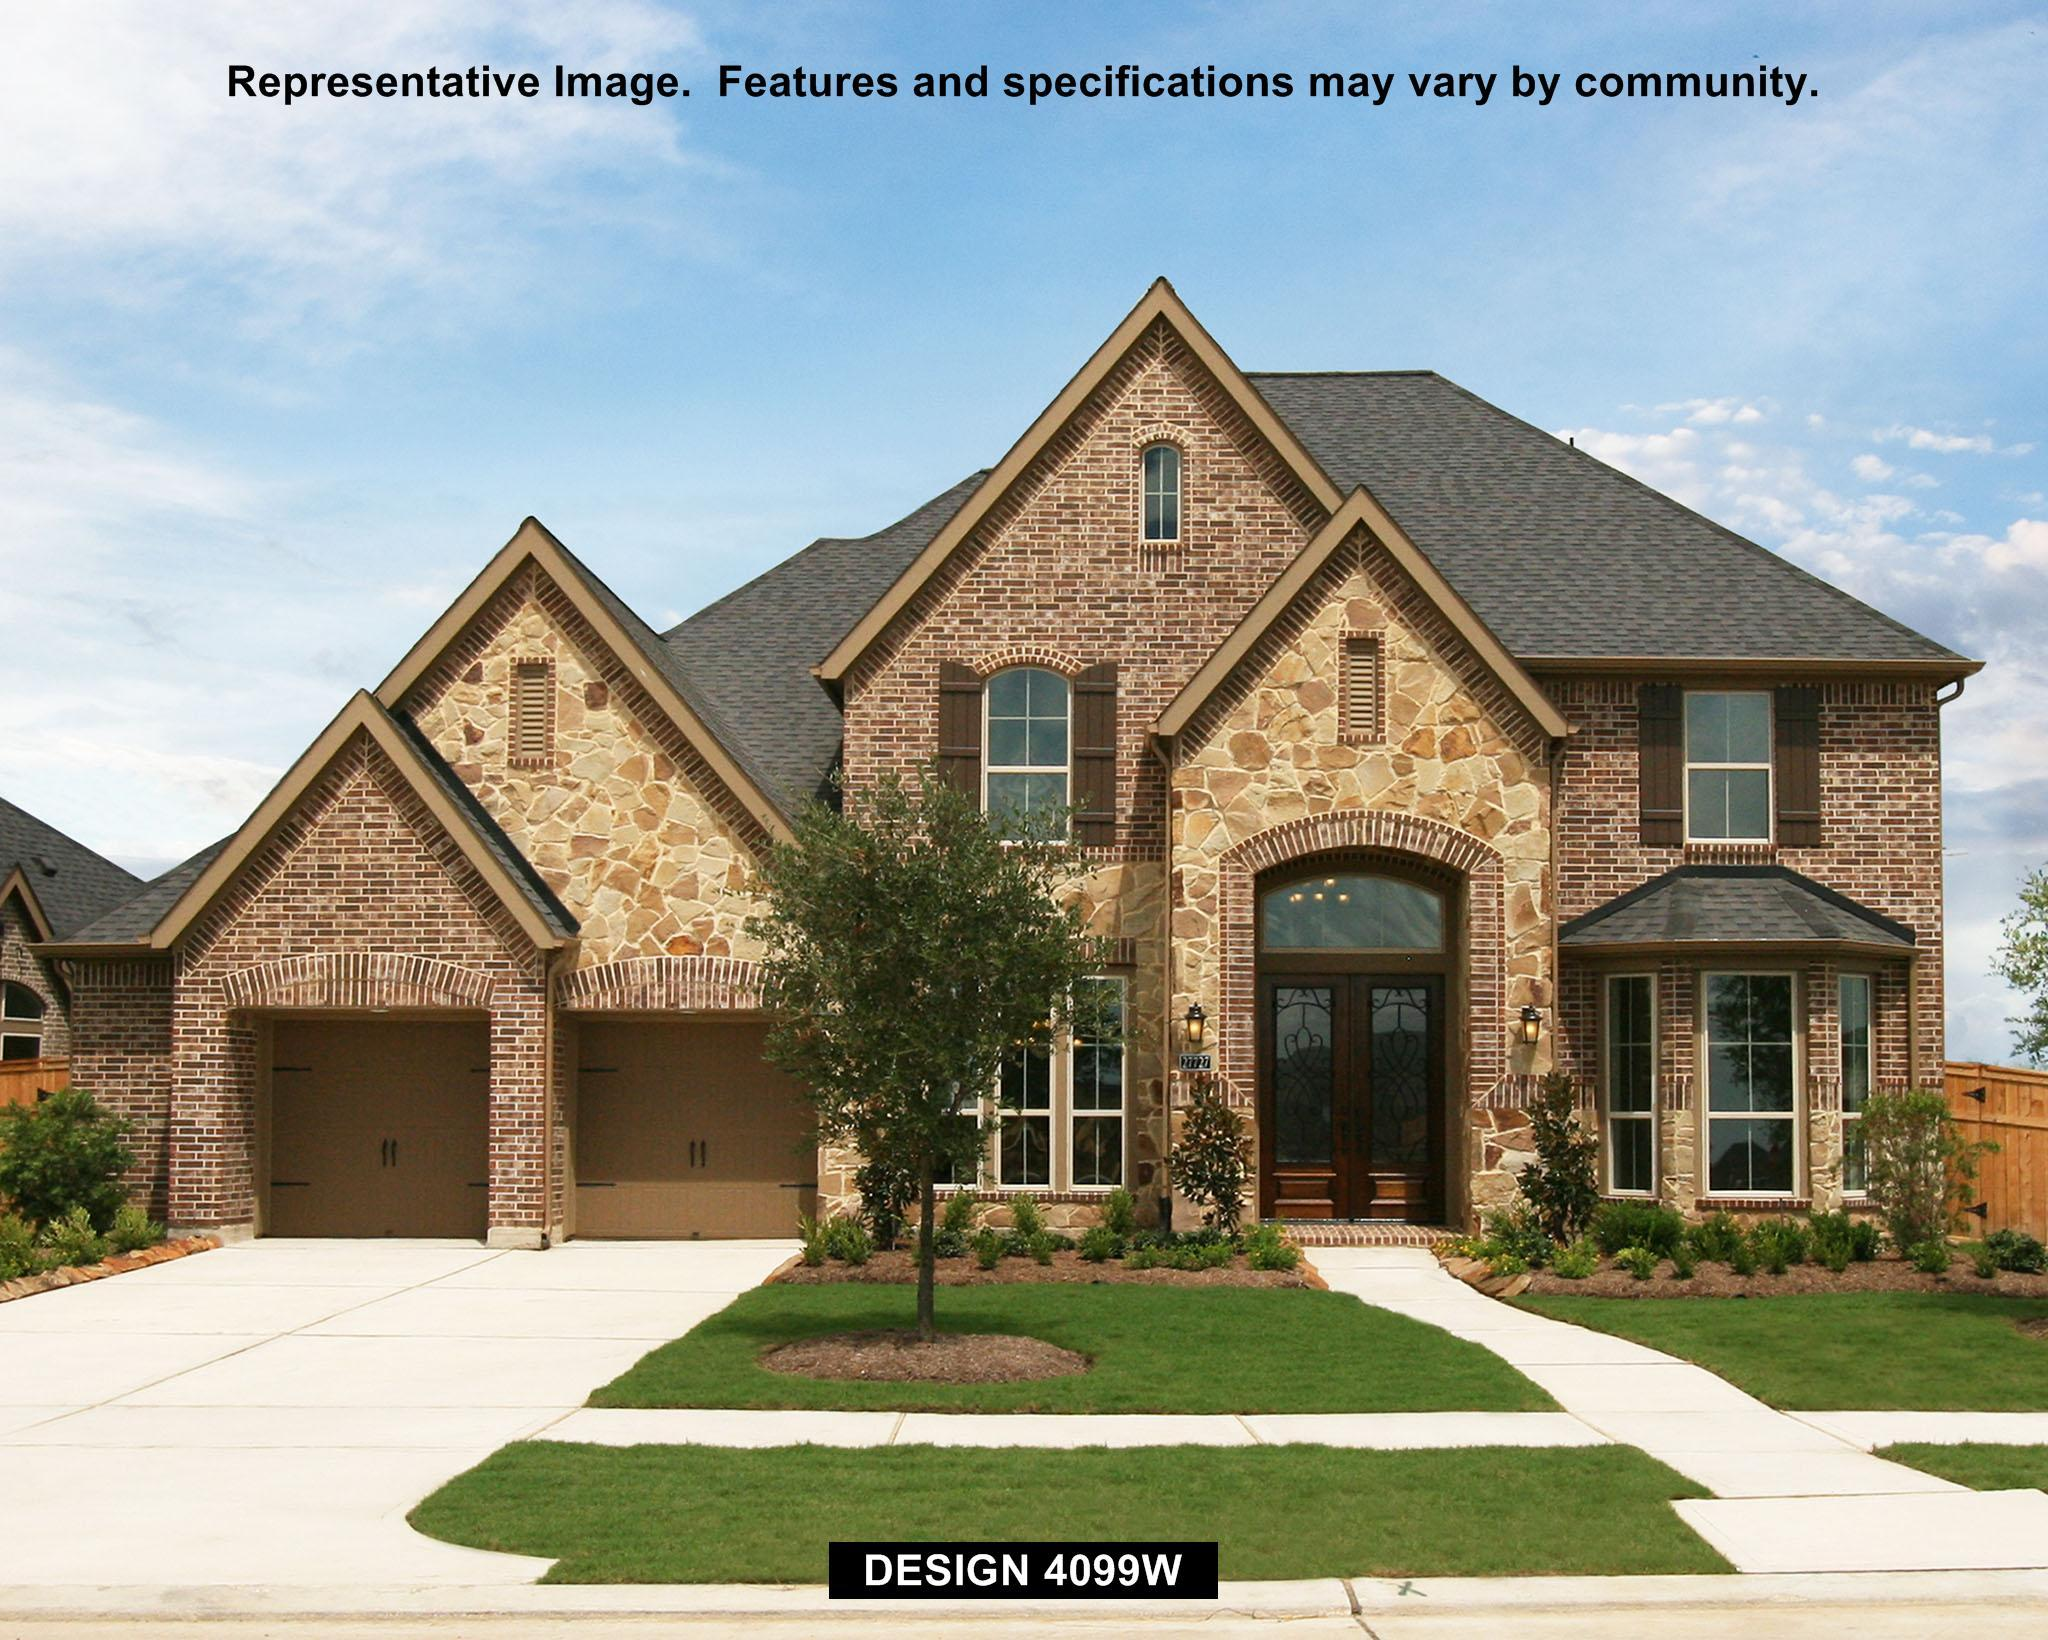 Perry Homes Riverstone Riverstone 65 39 4099w 899800